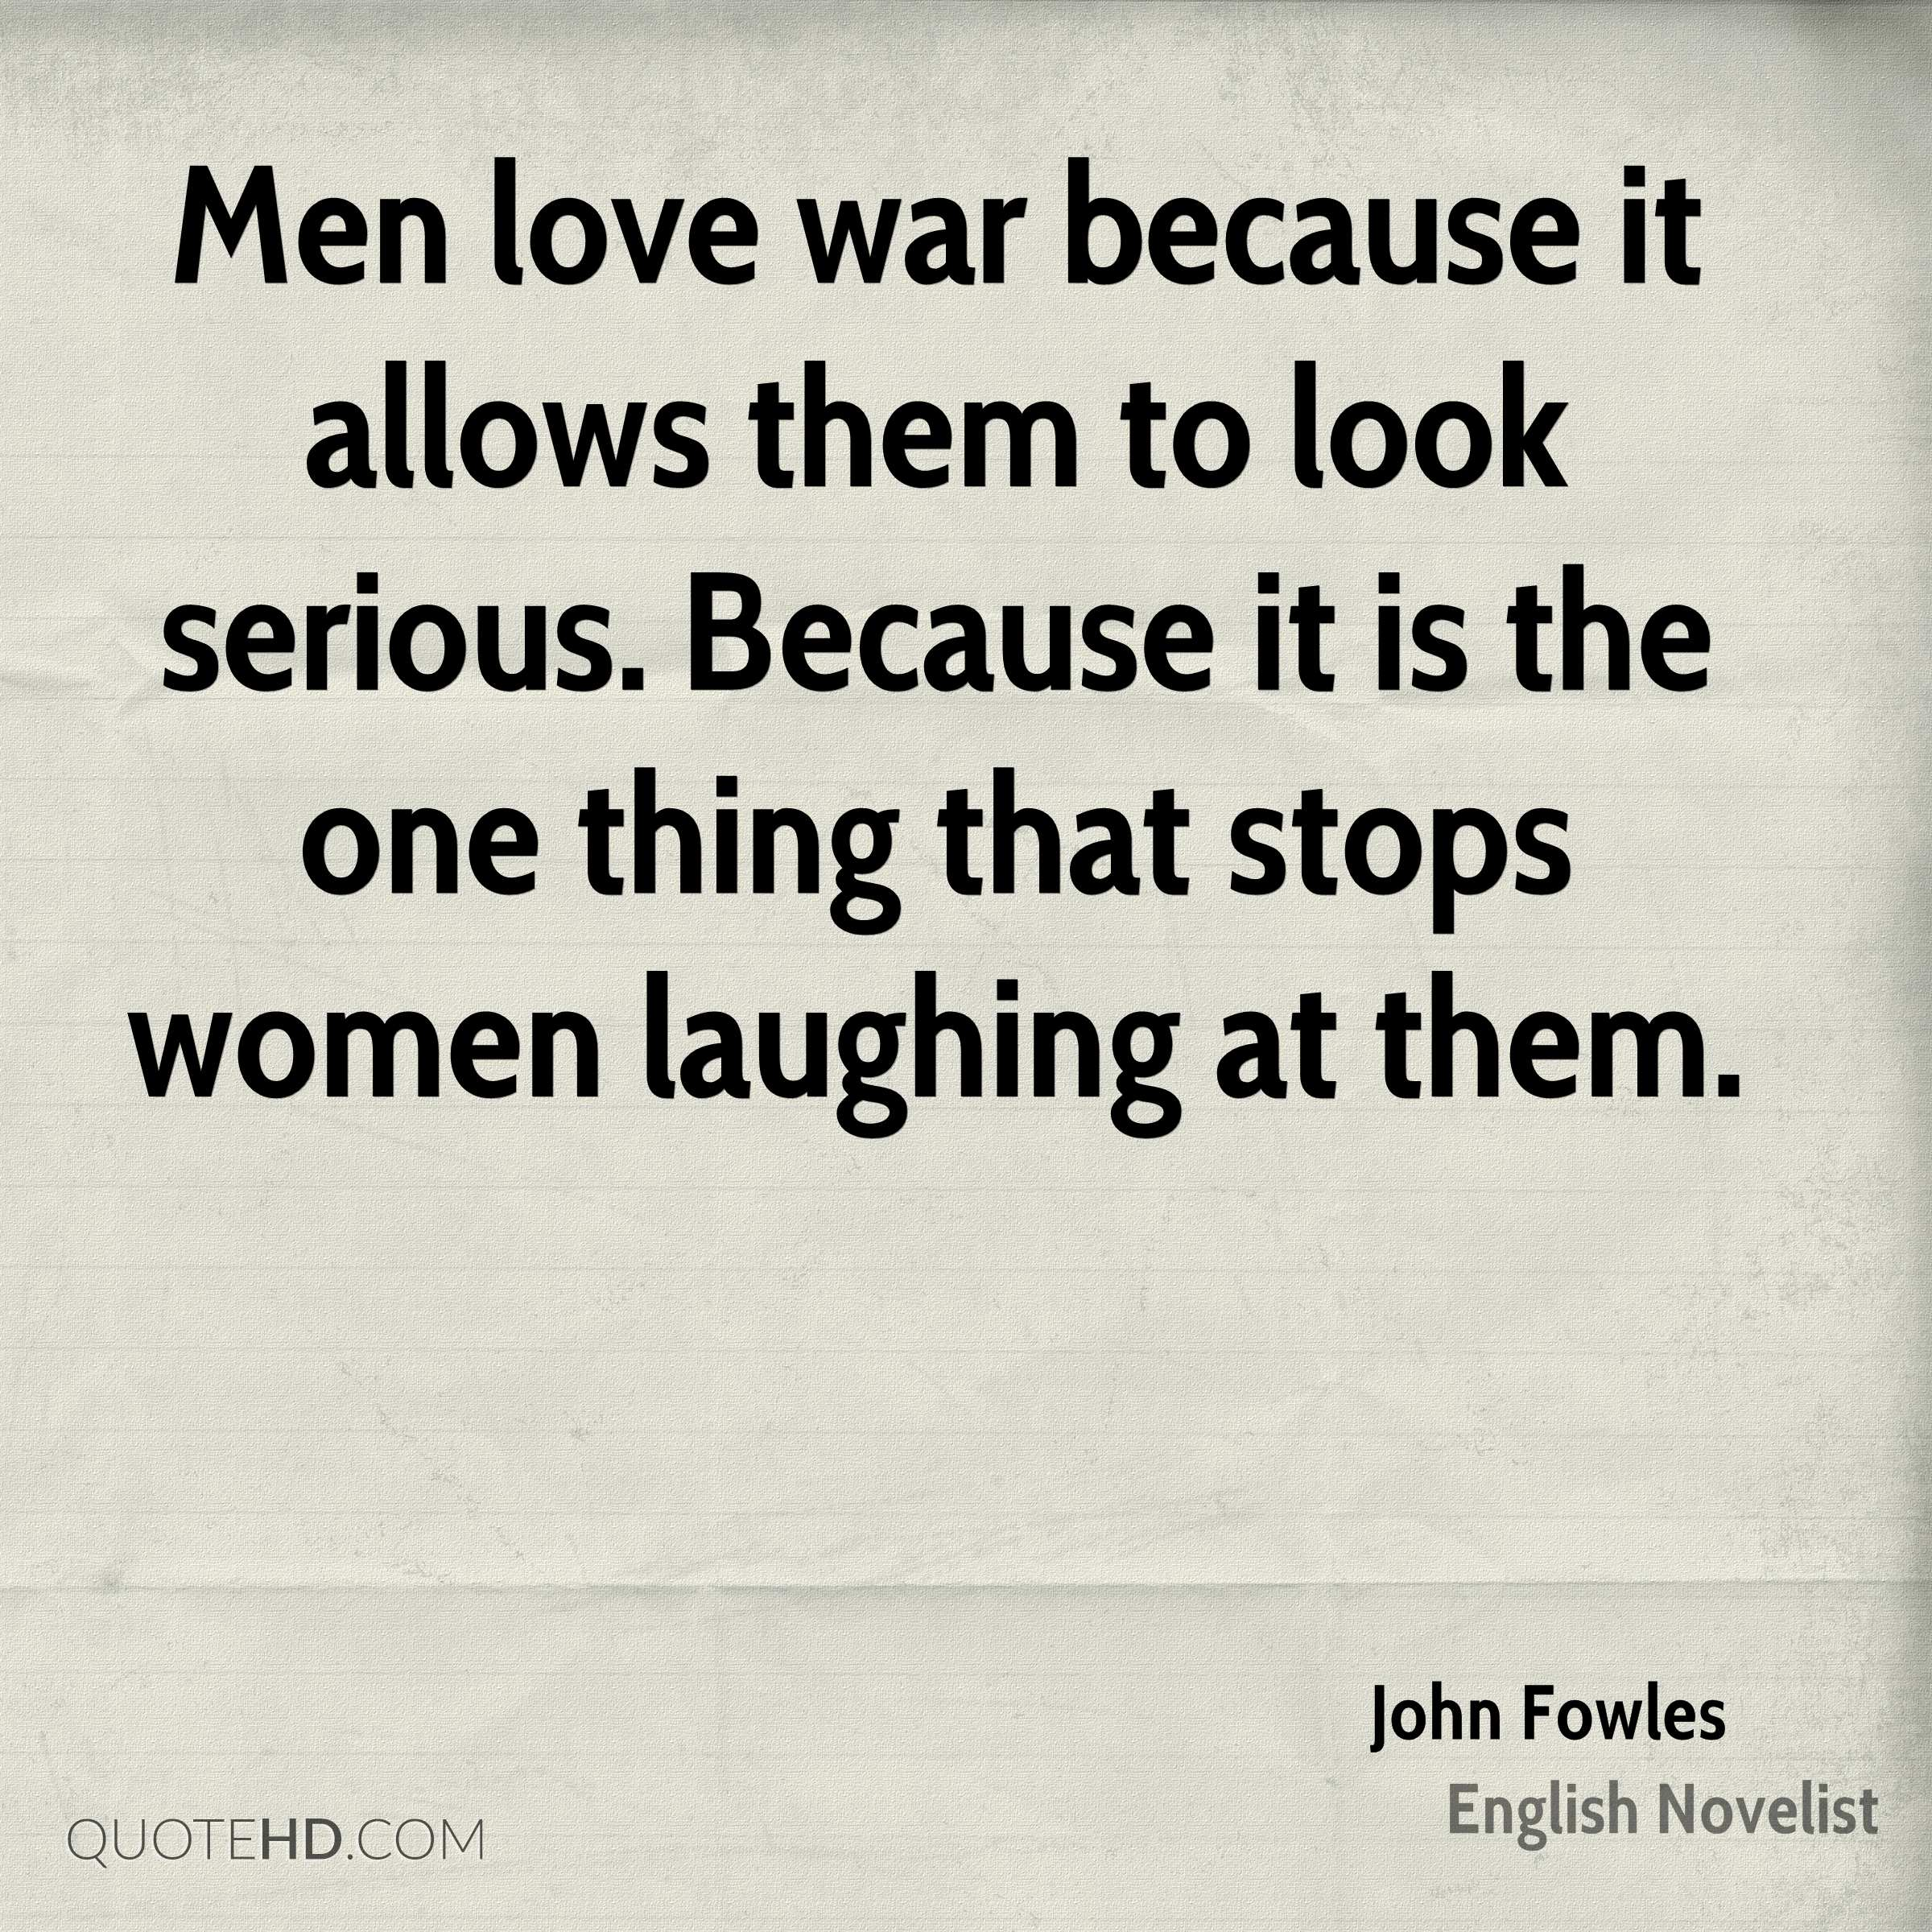 Men love war because it allows them to look serious. Because it is the one thing that stops women laughing at them.